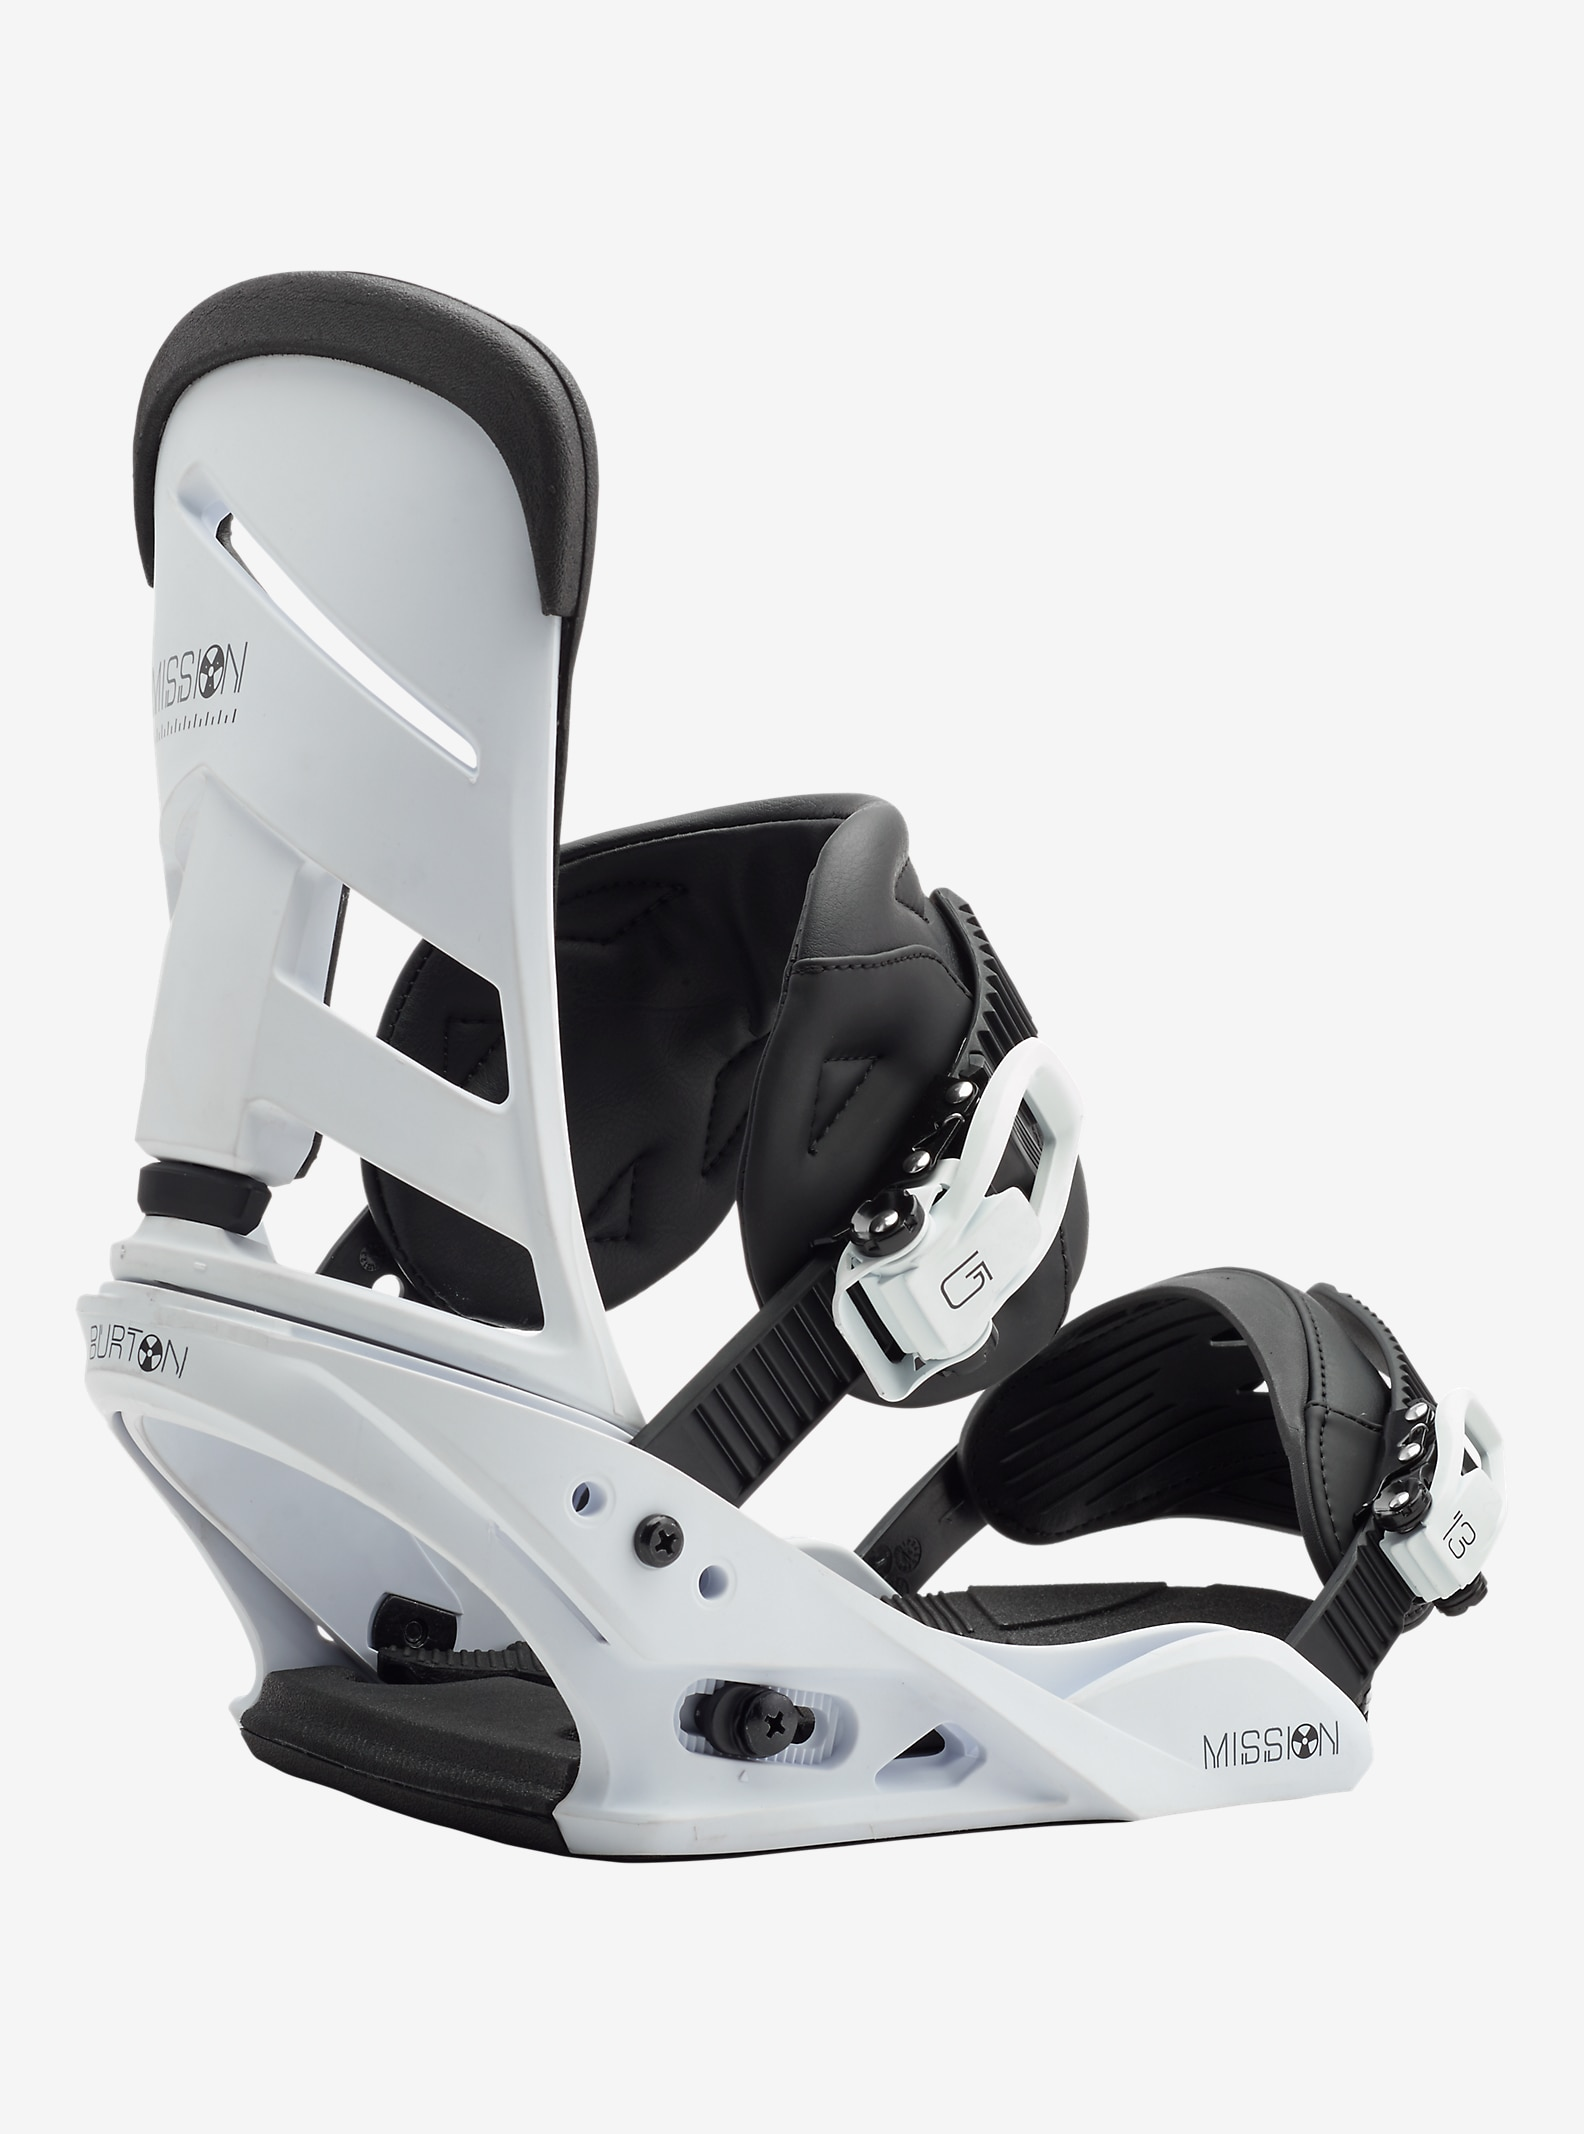 Burton Mission LTD Snowboard Binding shown in White